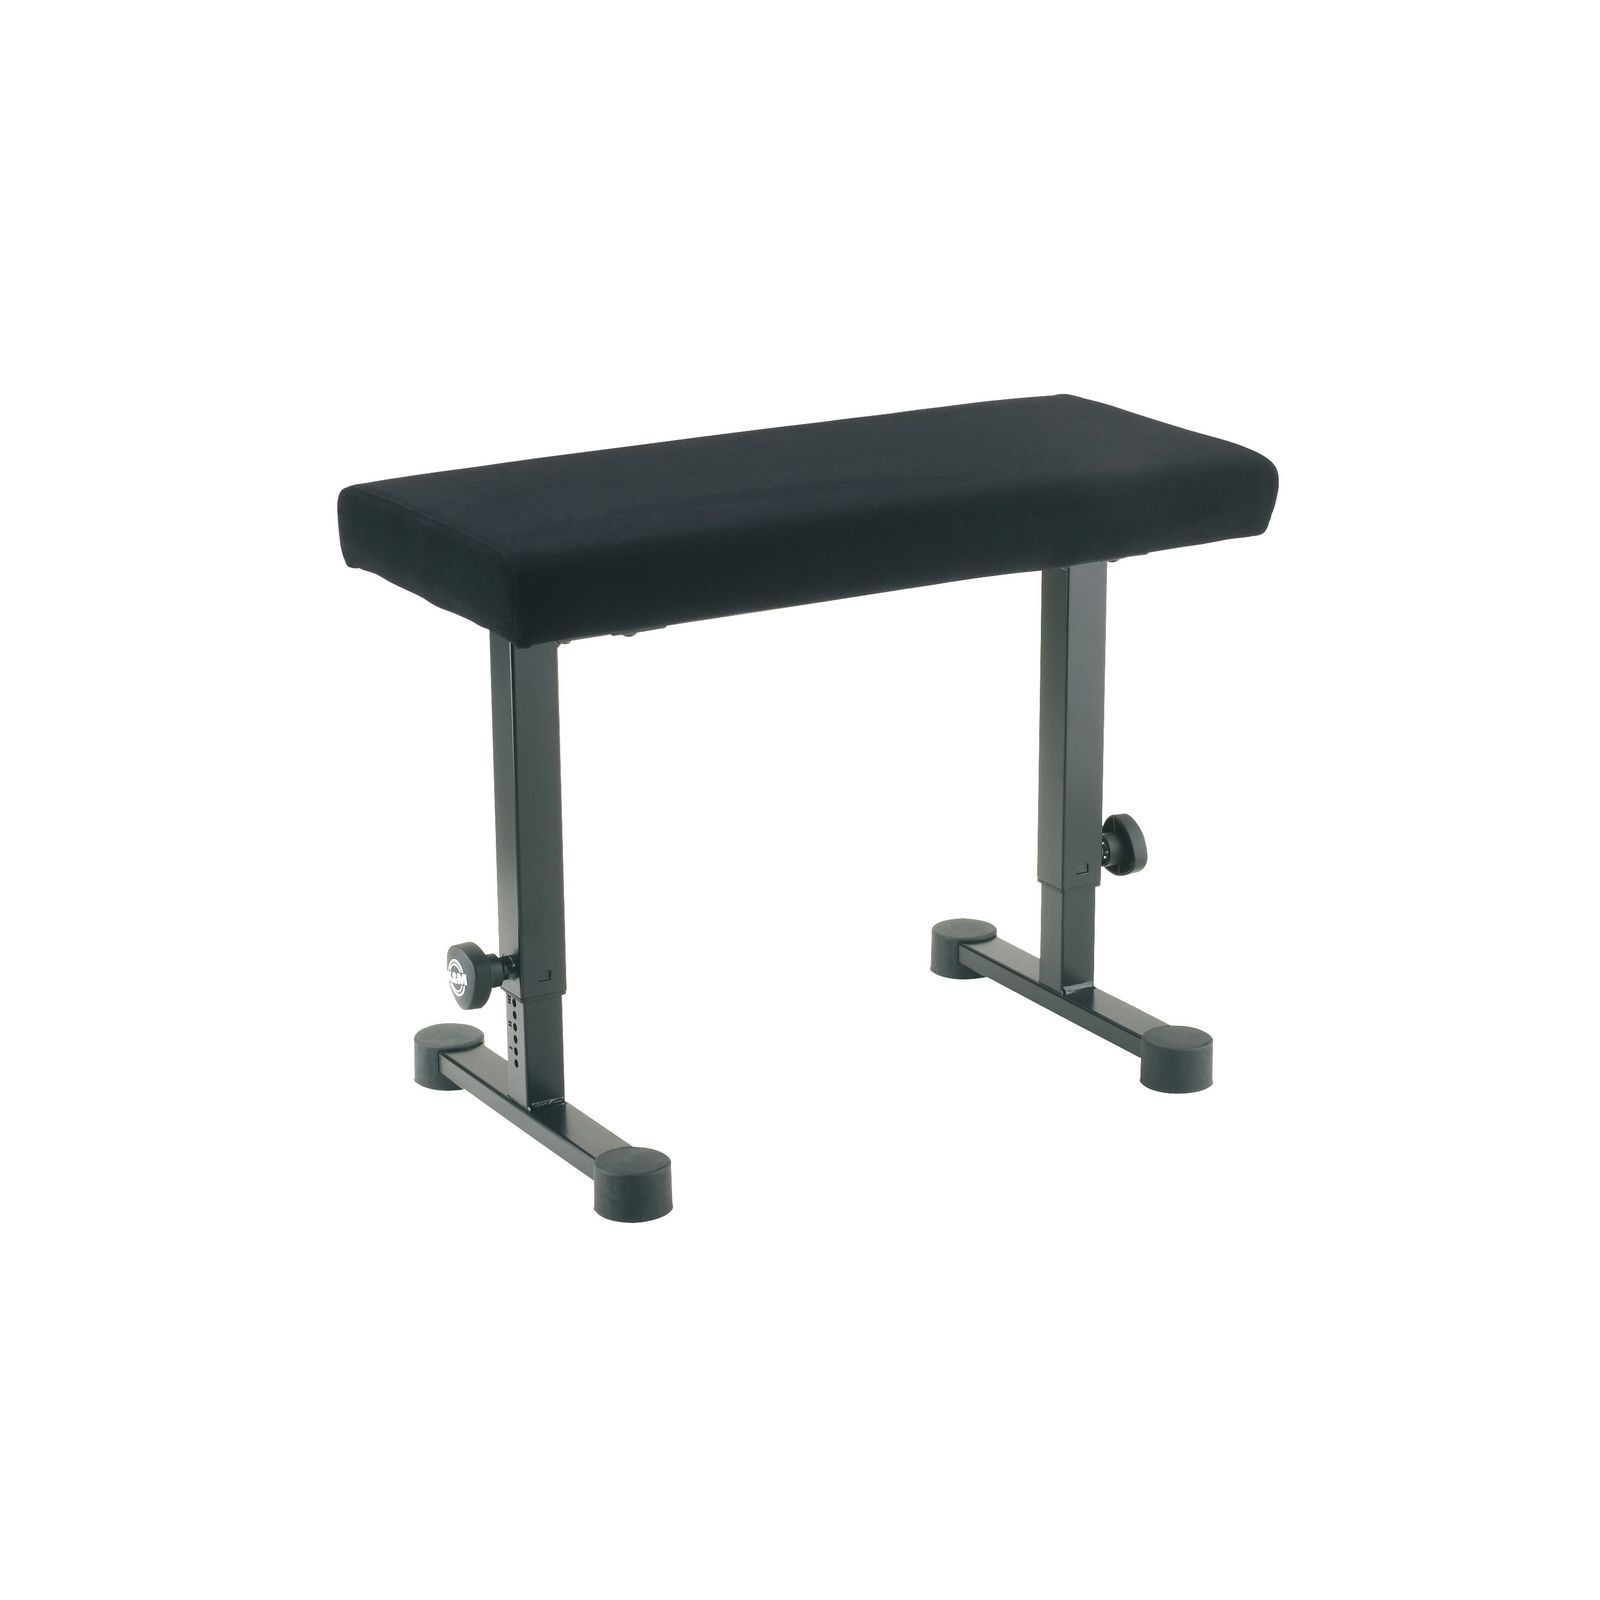 König & Meyer 14086 Piano Bench black fabric Produktbillede